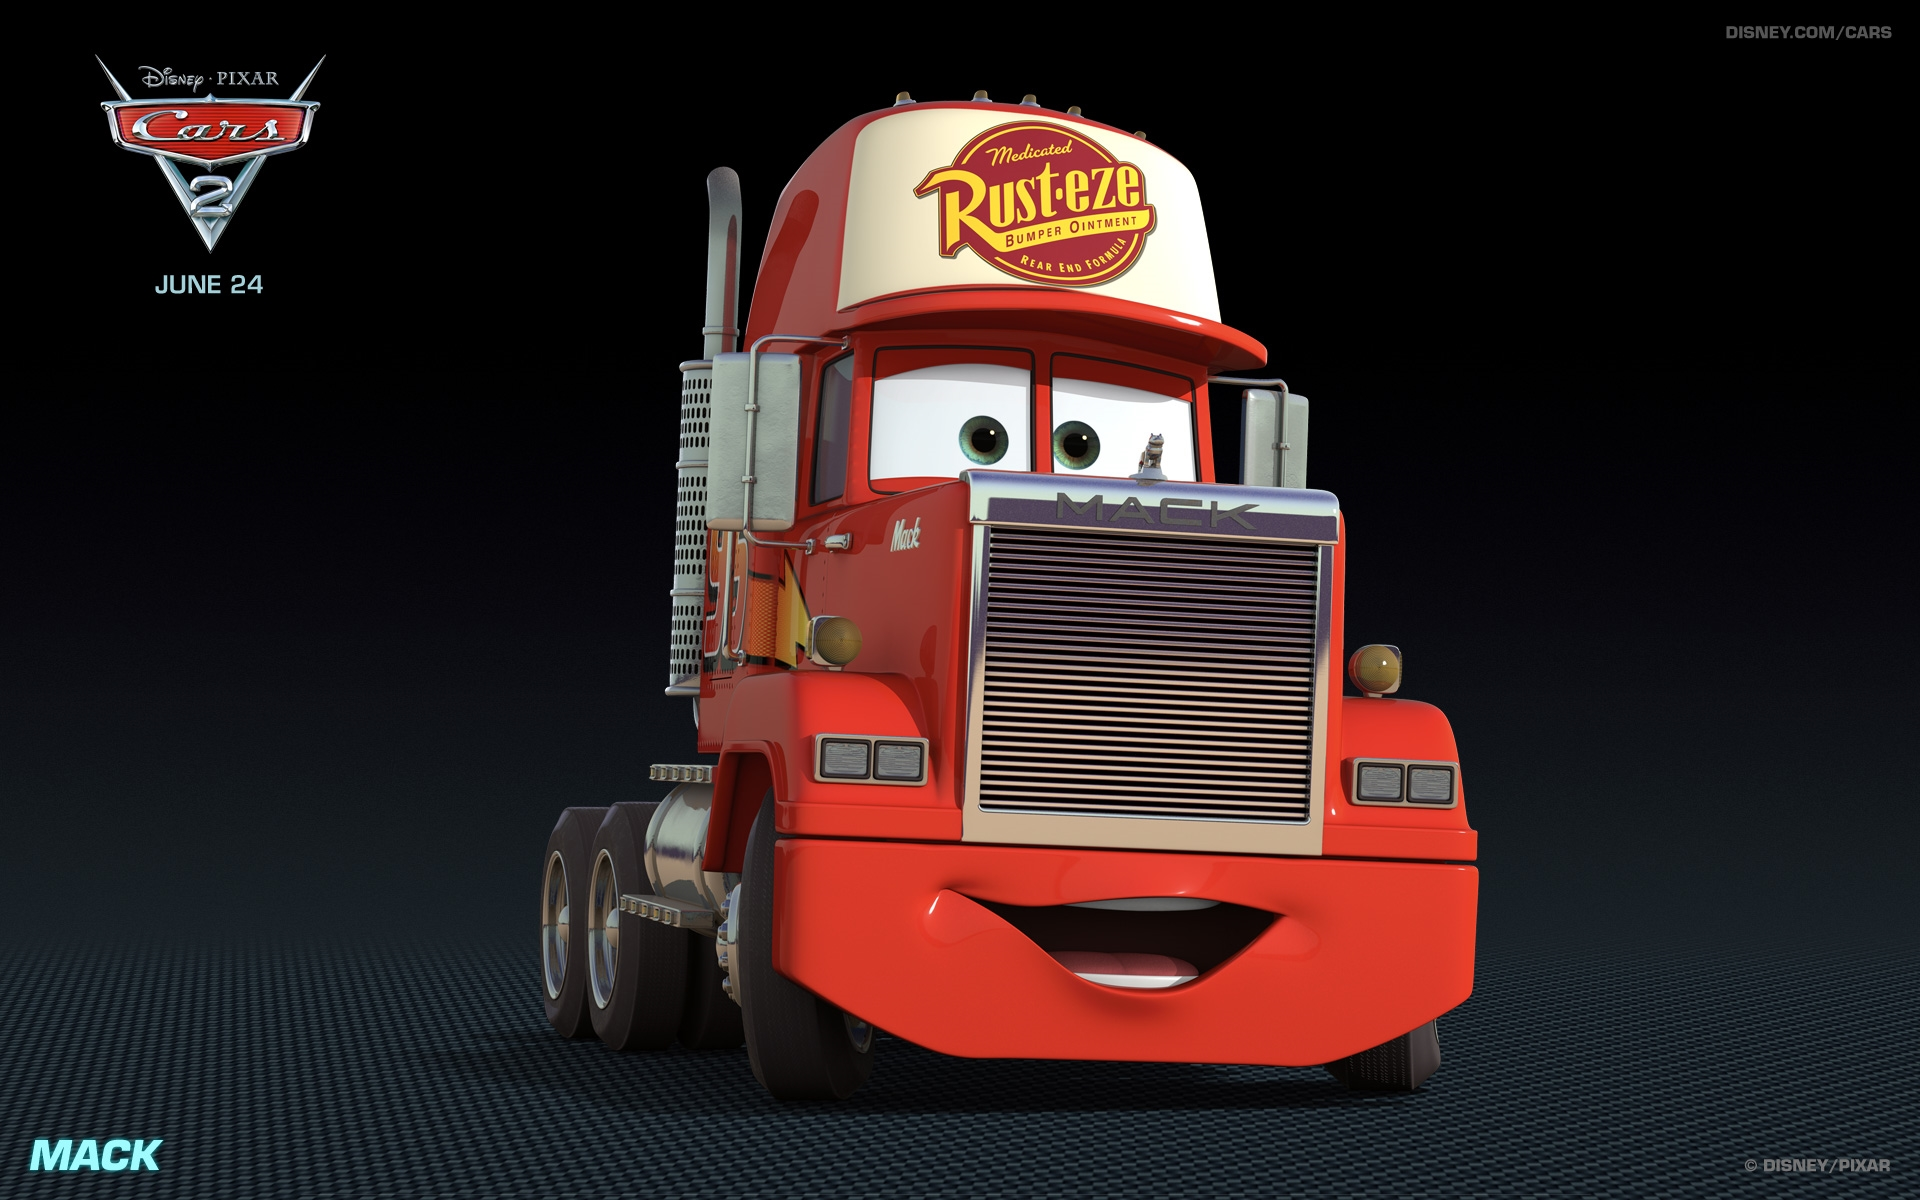 mack disney cars 2 free hd wallpaper